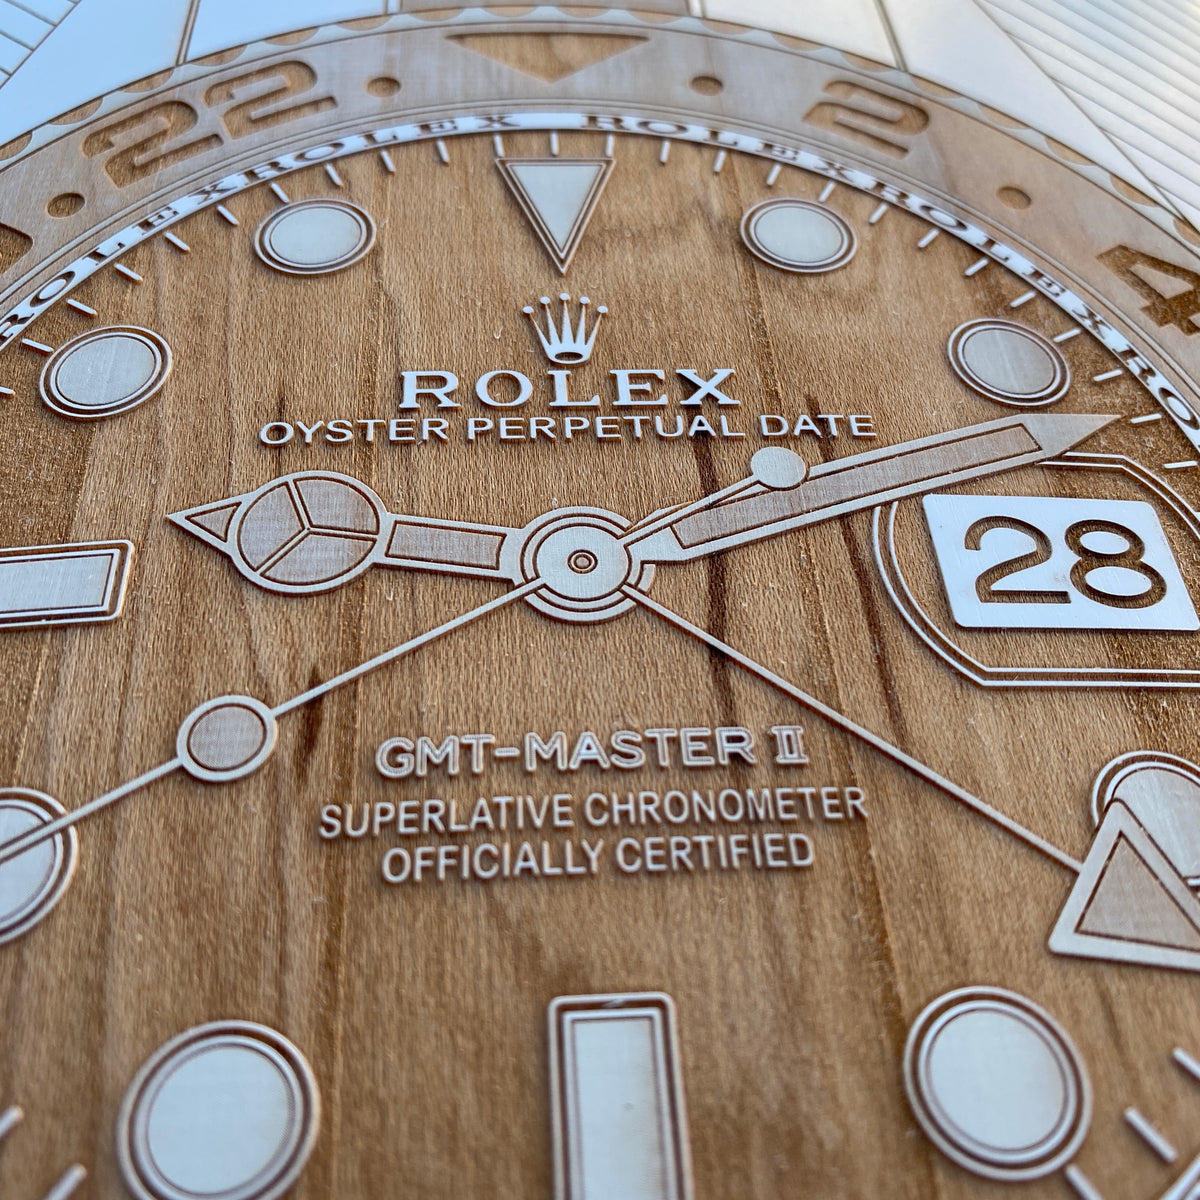 Rolex GMT Master II Root Beer Skateboard Deck Art - White - Lugcraft Inc